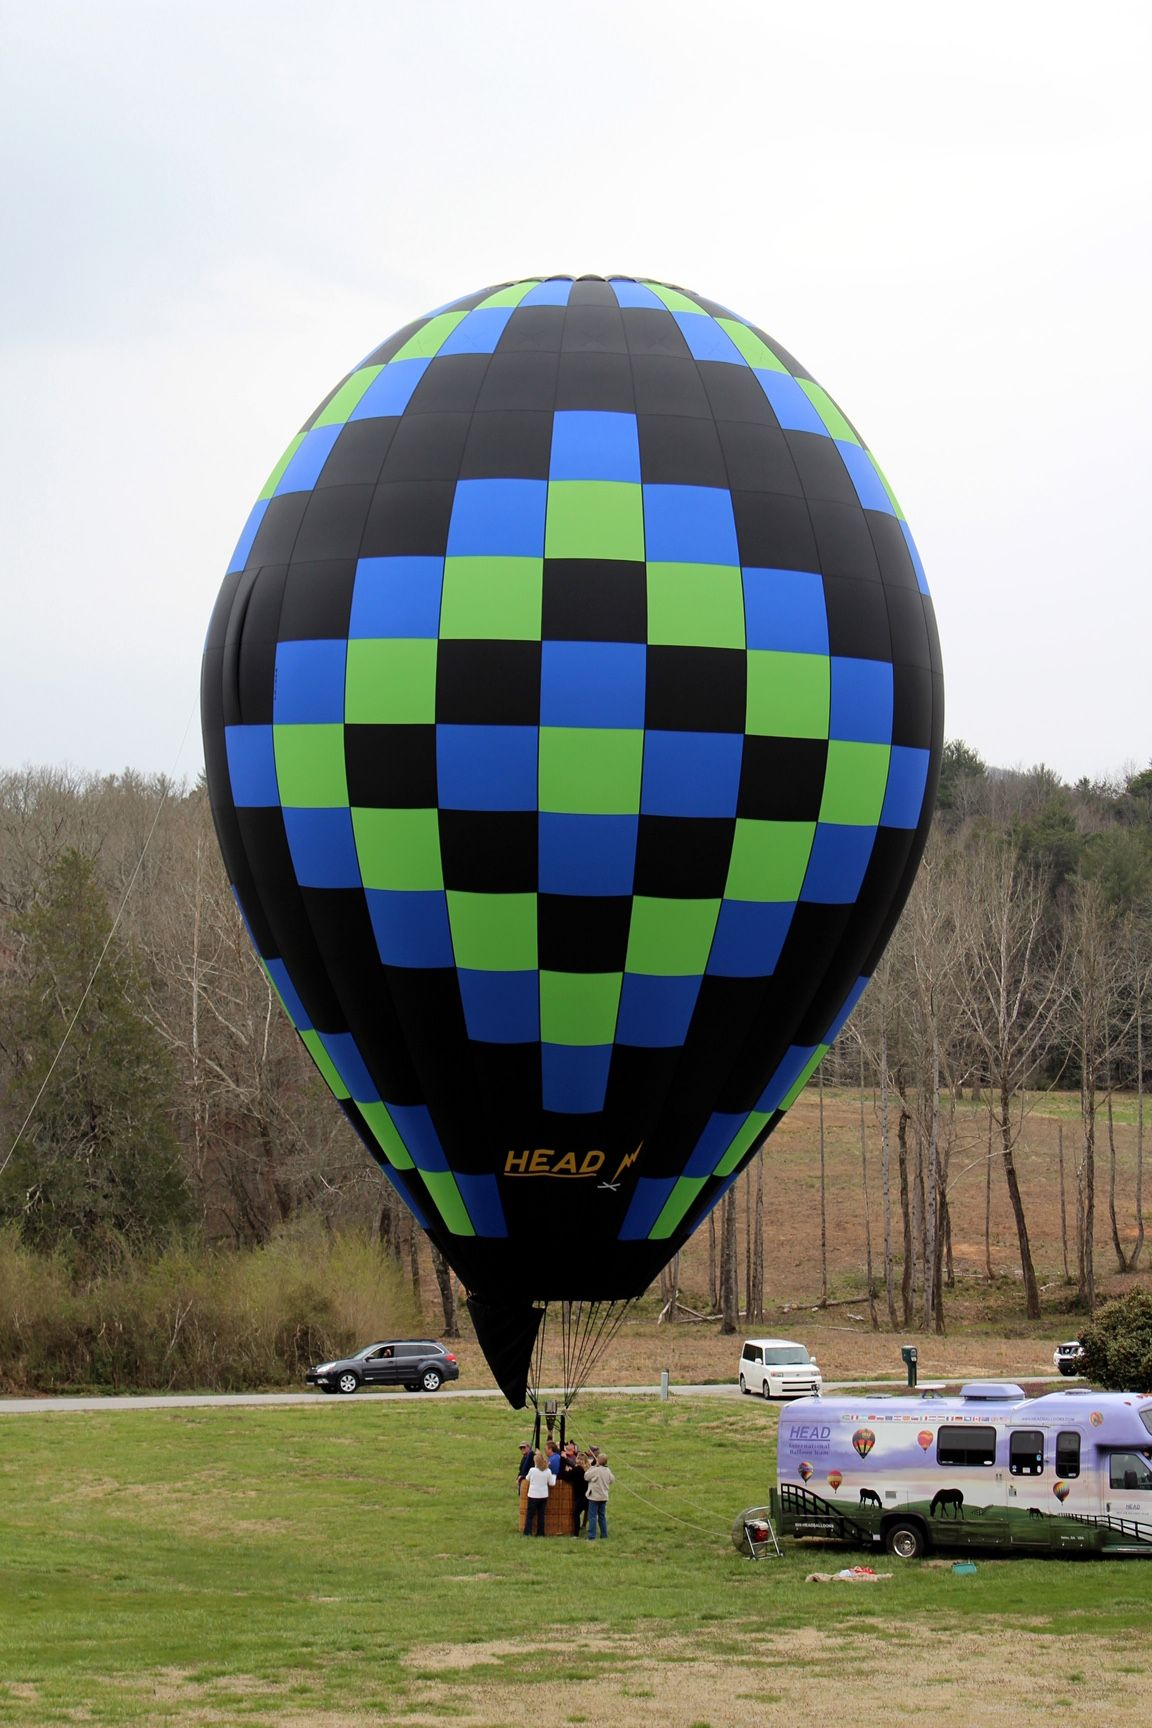 The Villages Polo Club, The Villages Balloon Festival, Hot